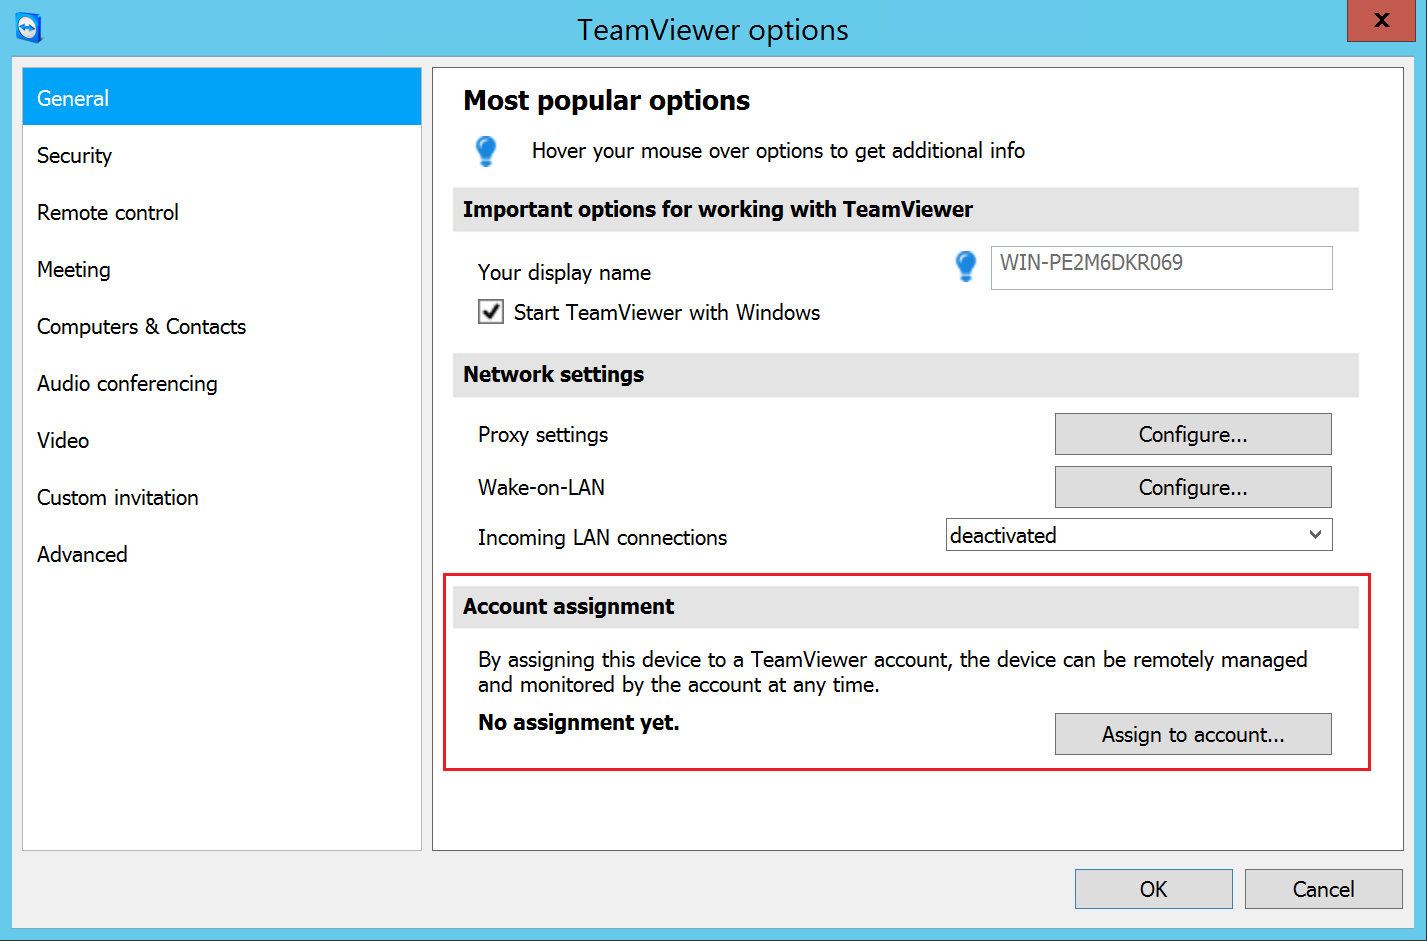 how to make application like teamviewer